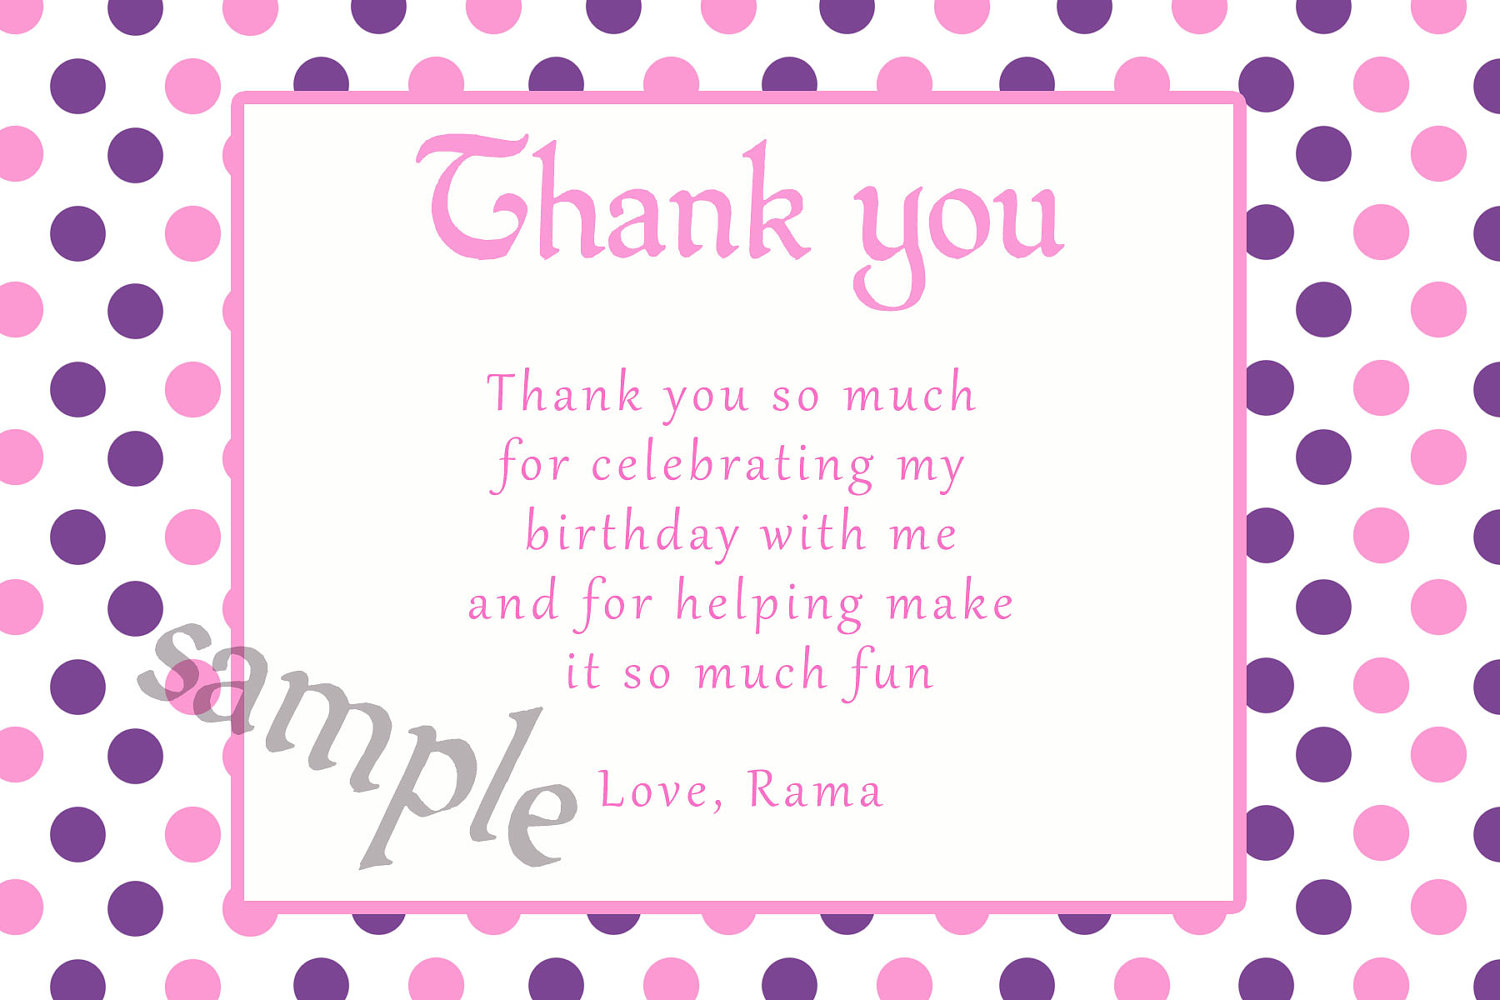 birthday thank you card wording samples ; baby-shower-thank-you-card-wording_69104